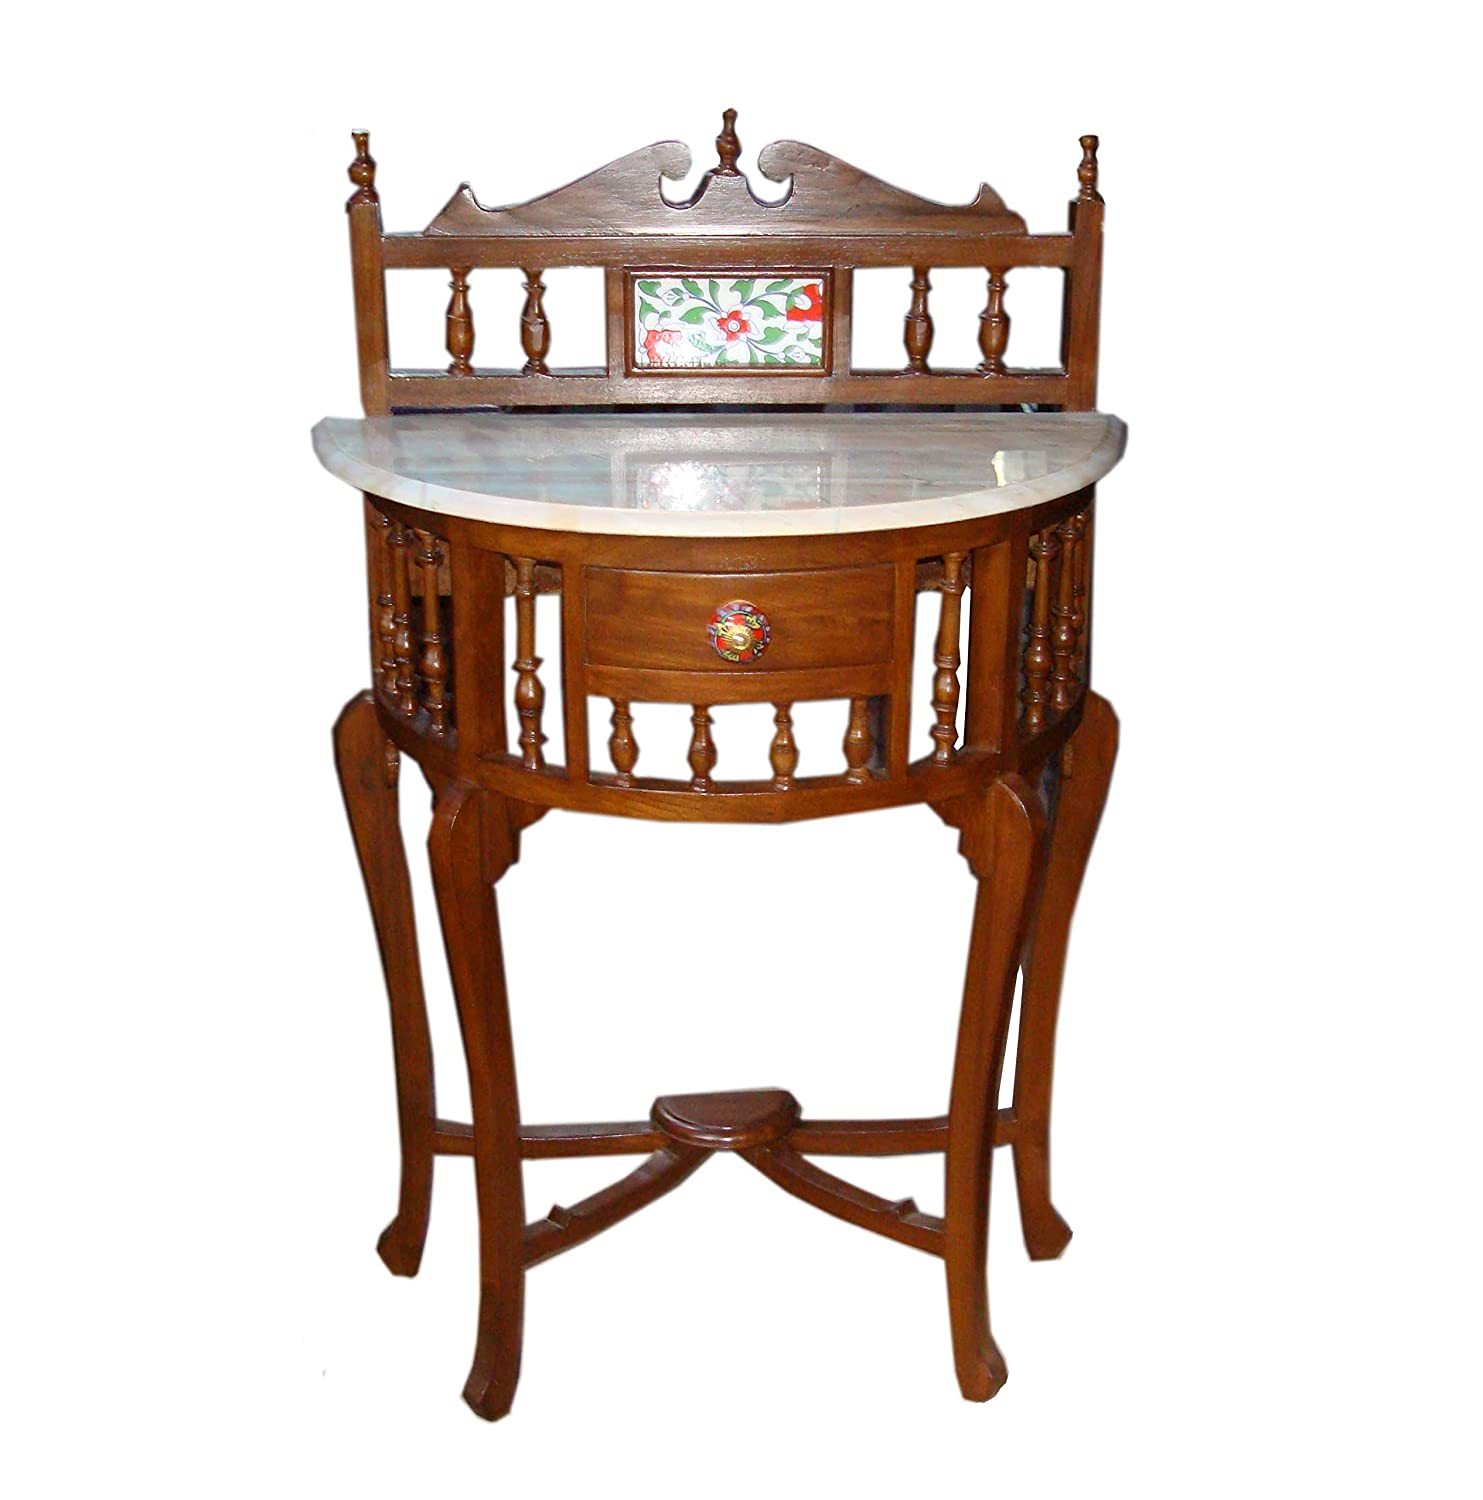 Traditional Half Round (D) Shape Console Table Solid Teak Wood with Marble Top, Lacquer Finish Honey Brown Size: 30x23x12 Inch